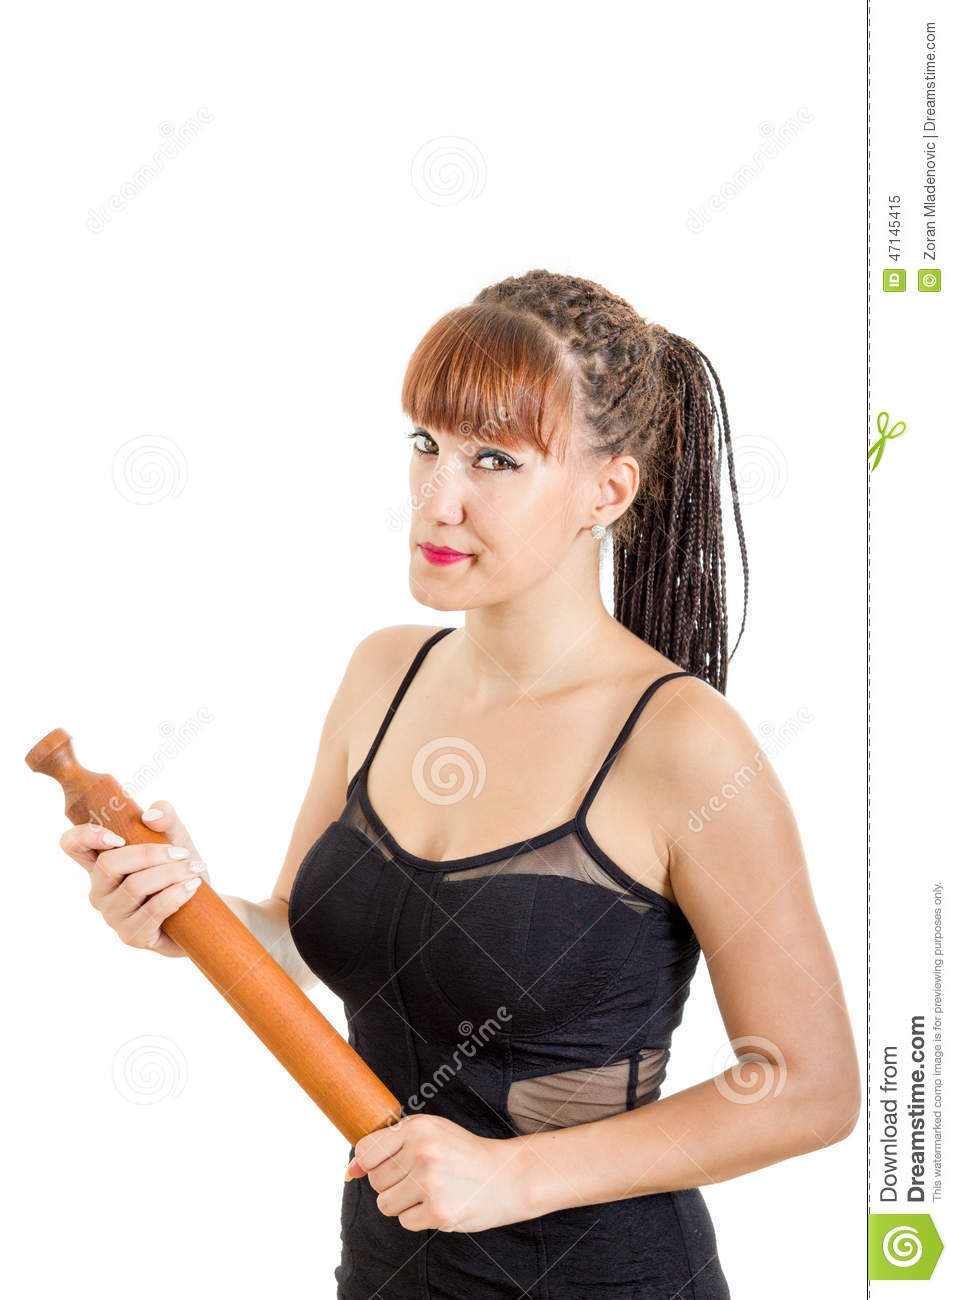 Modern housewife holding rolling pin wearing black dress for Modern housewife